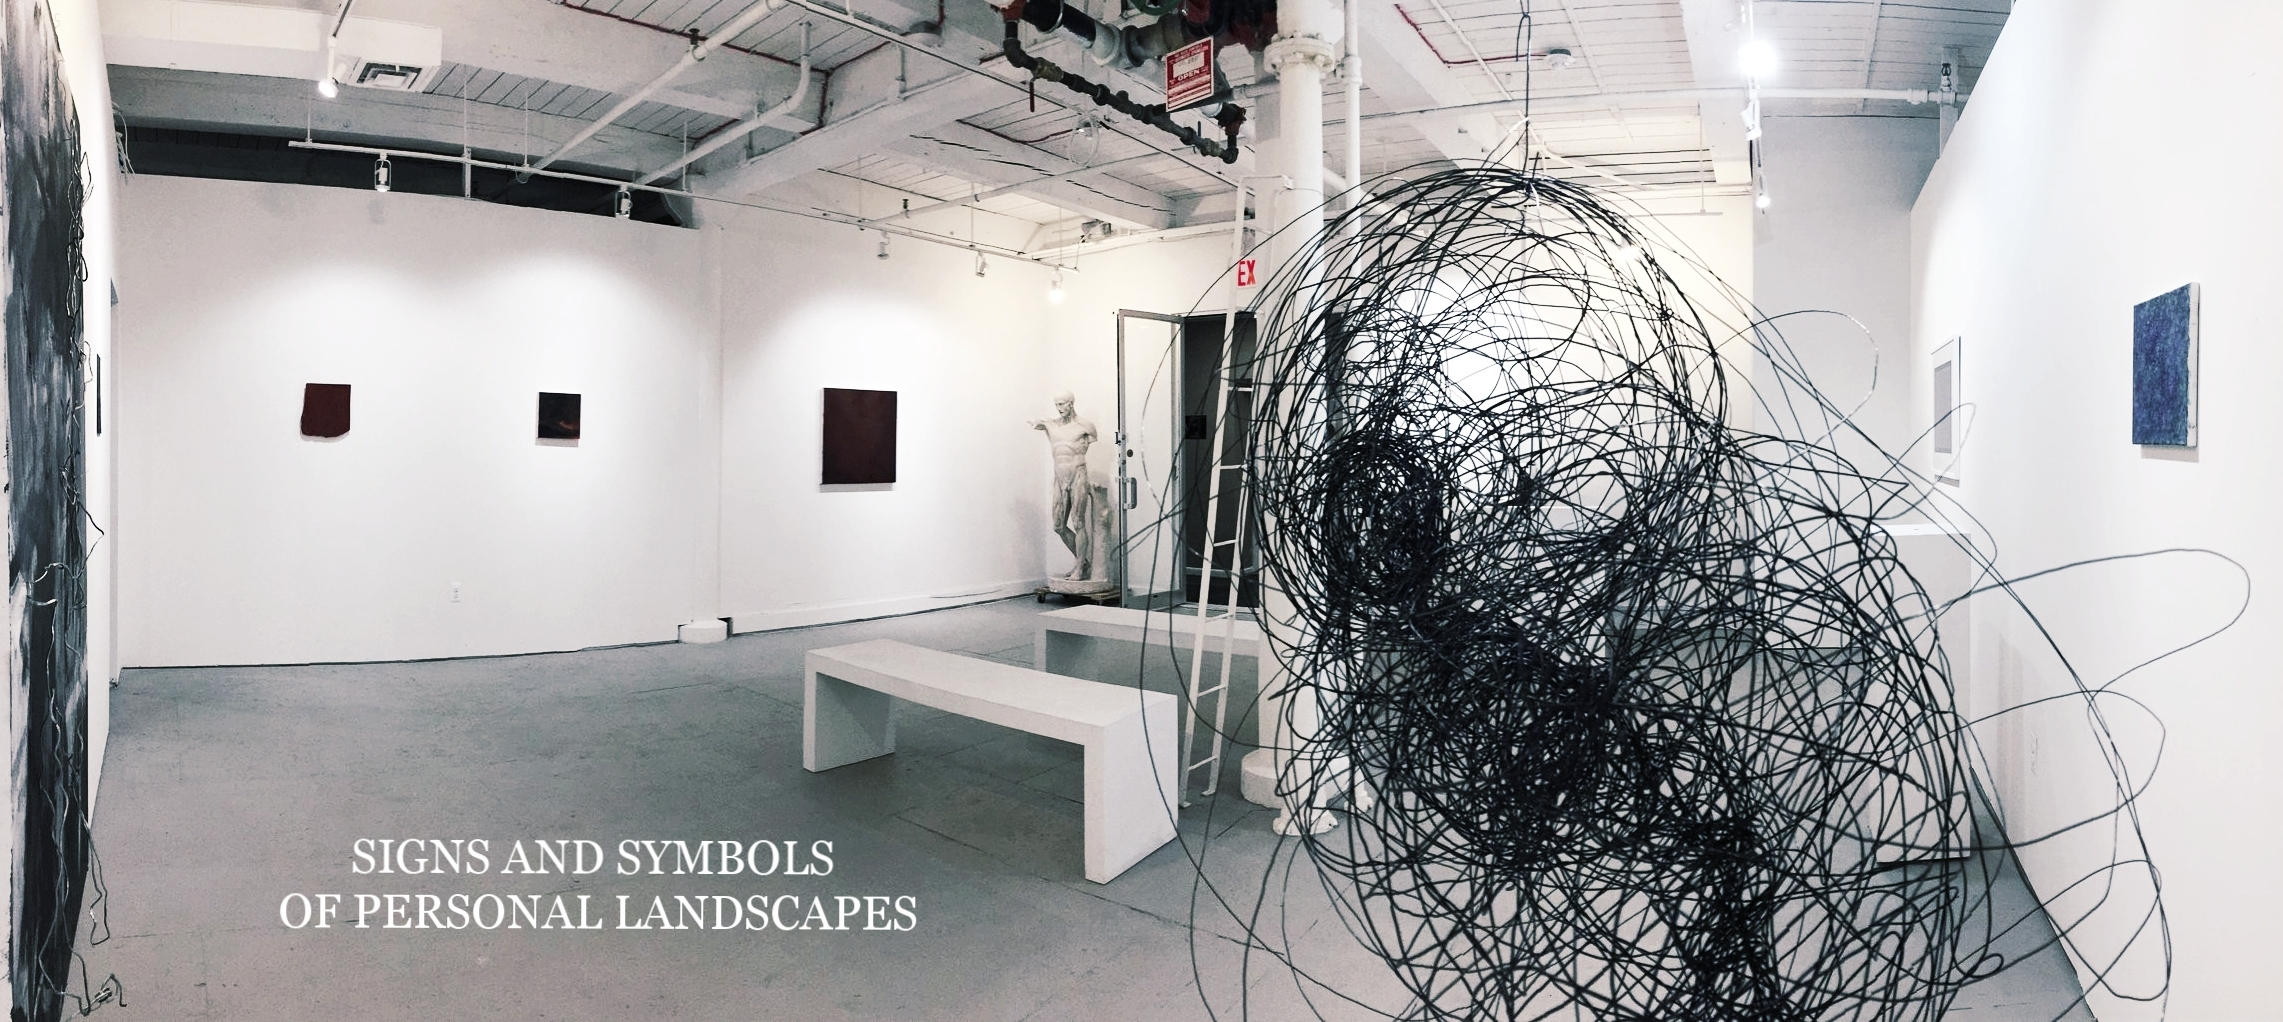 The New York School of the Arts Gallery is pleased to present SIGNS AND SYMBOLS OF PERSONAL LANDSCAPES.JPG